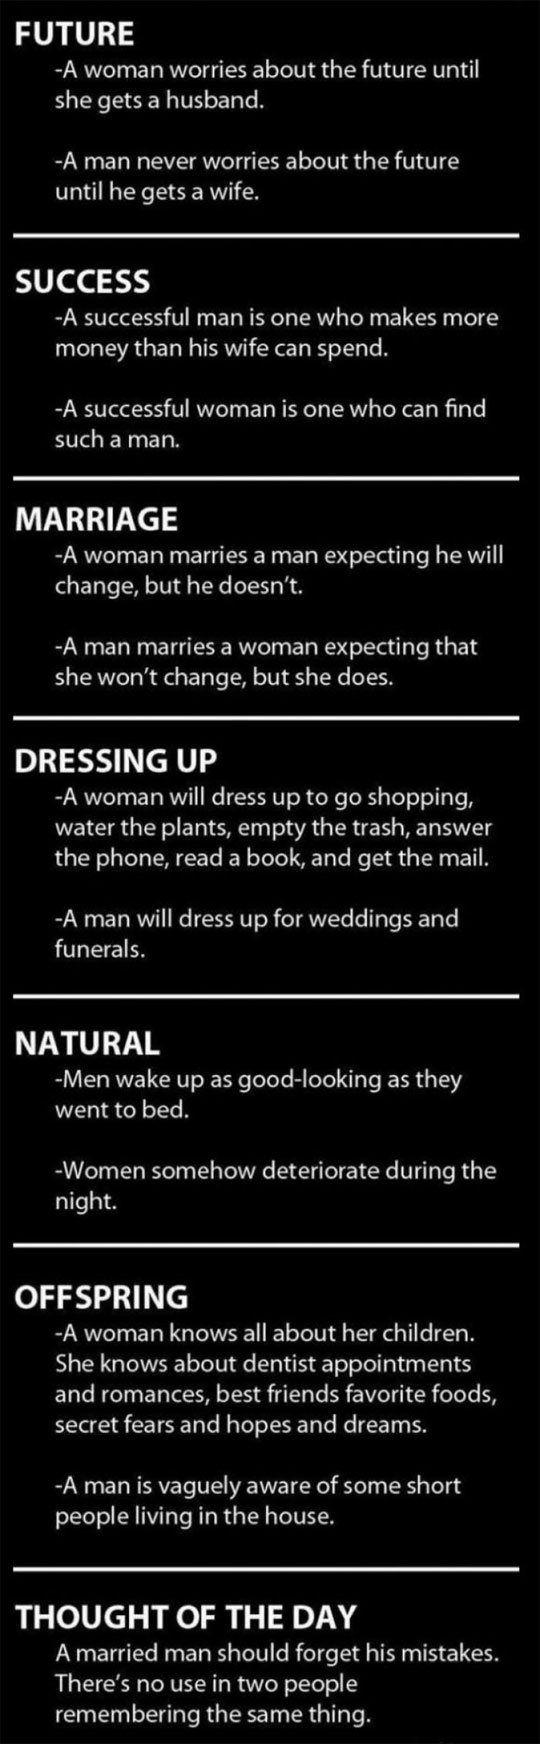 funny-men-women-difference-kids-future